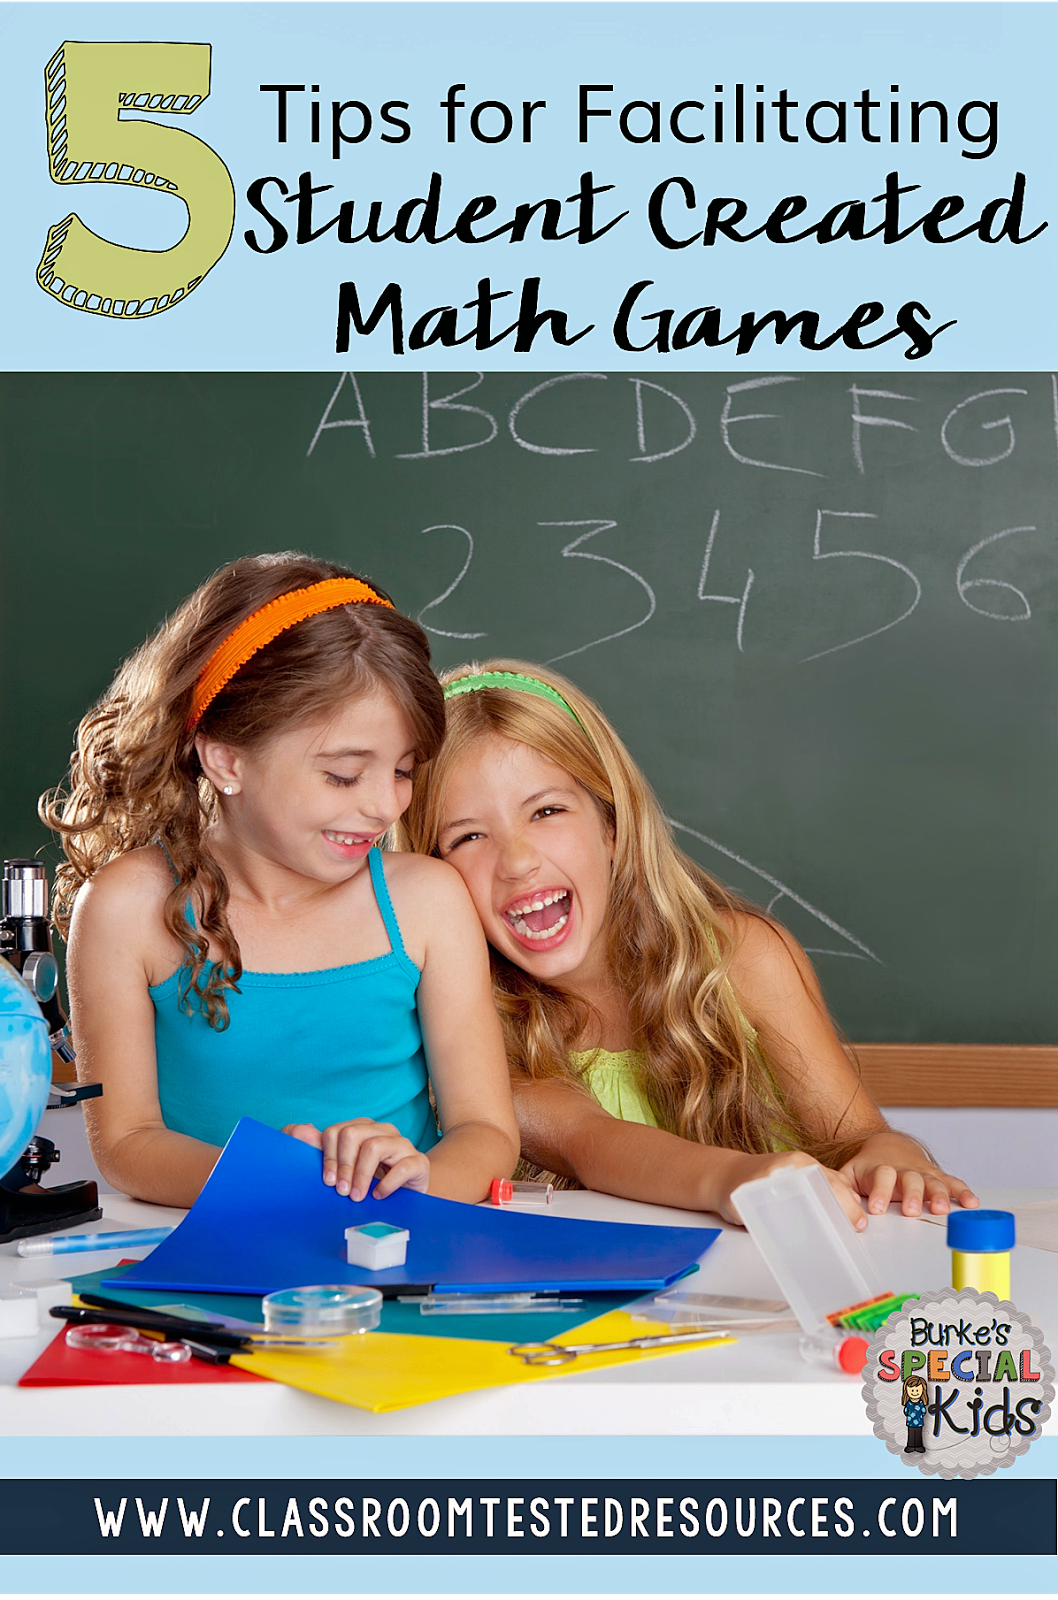 5 Tips for Facilitating Student Created Math Games | Classroom ...